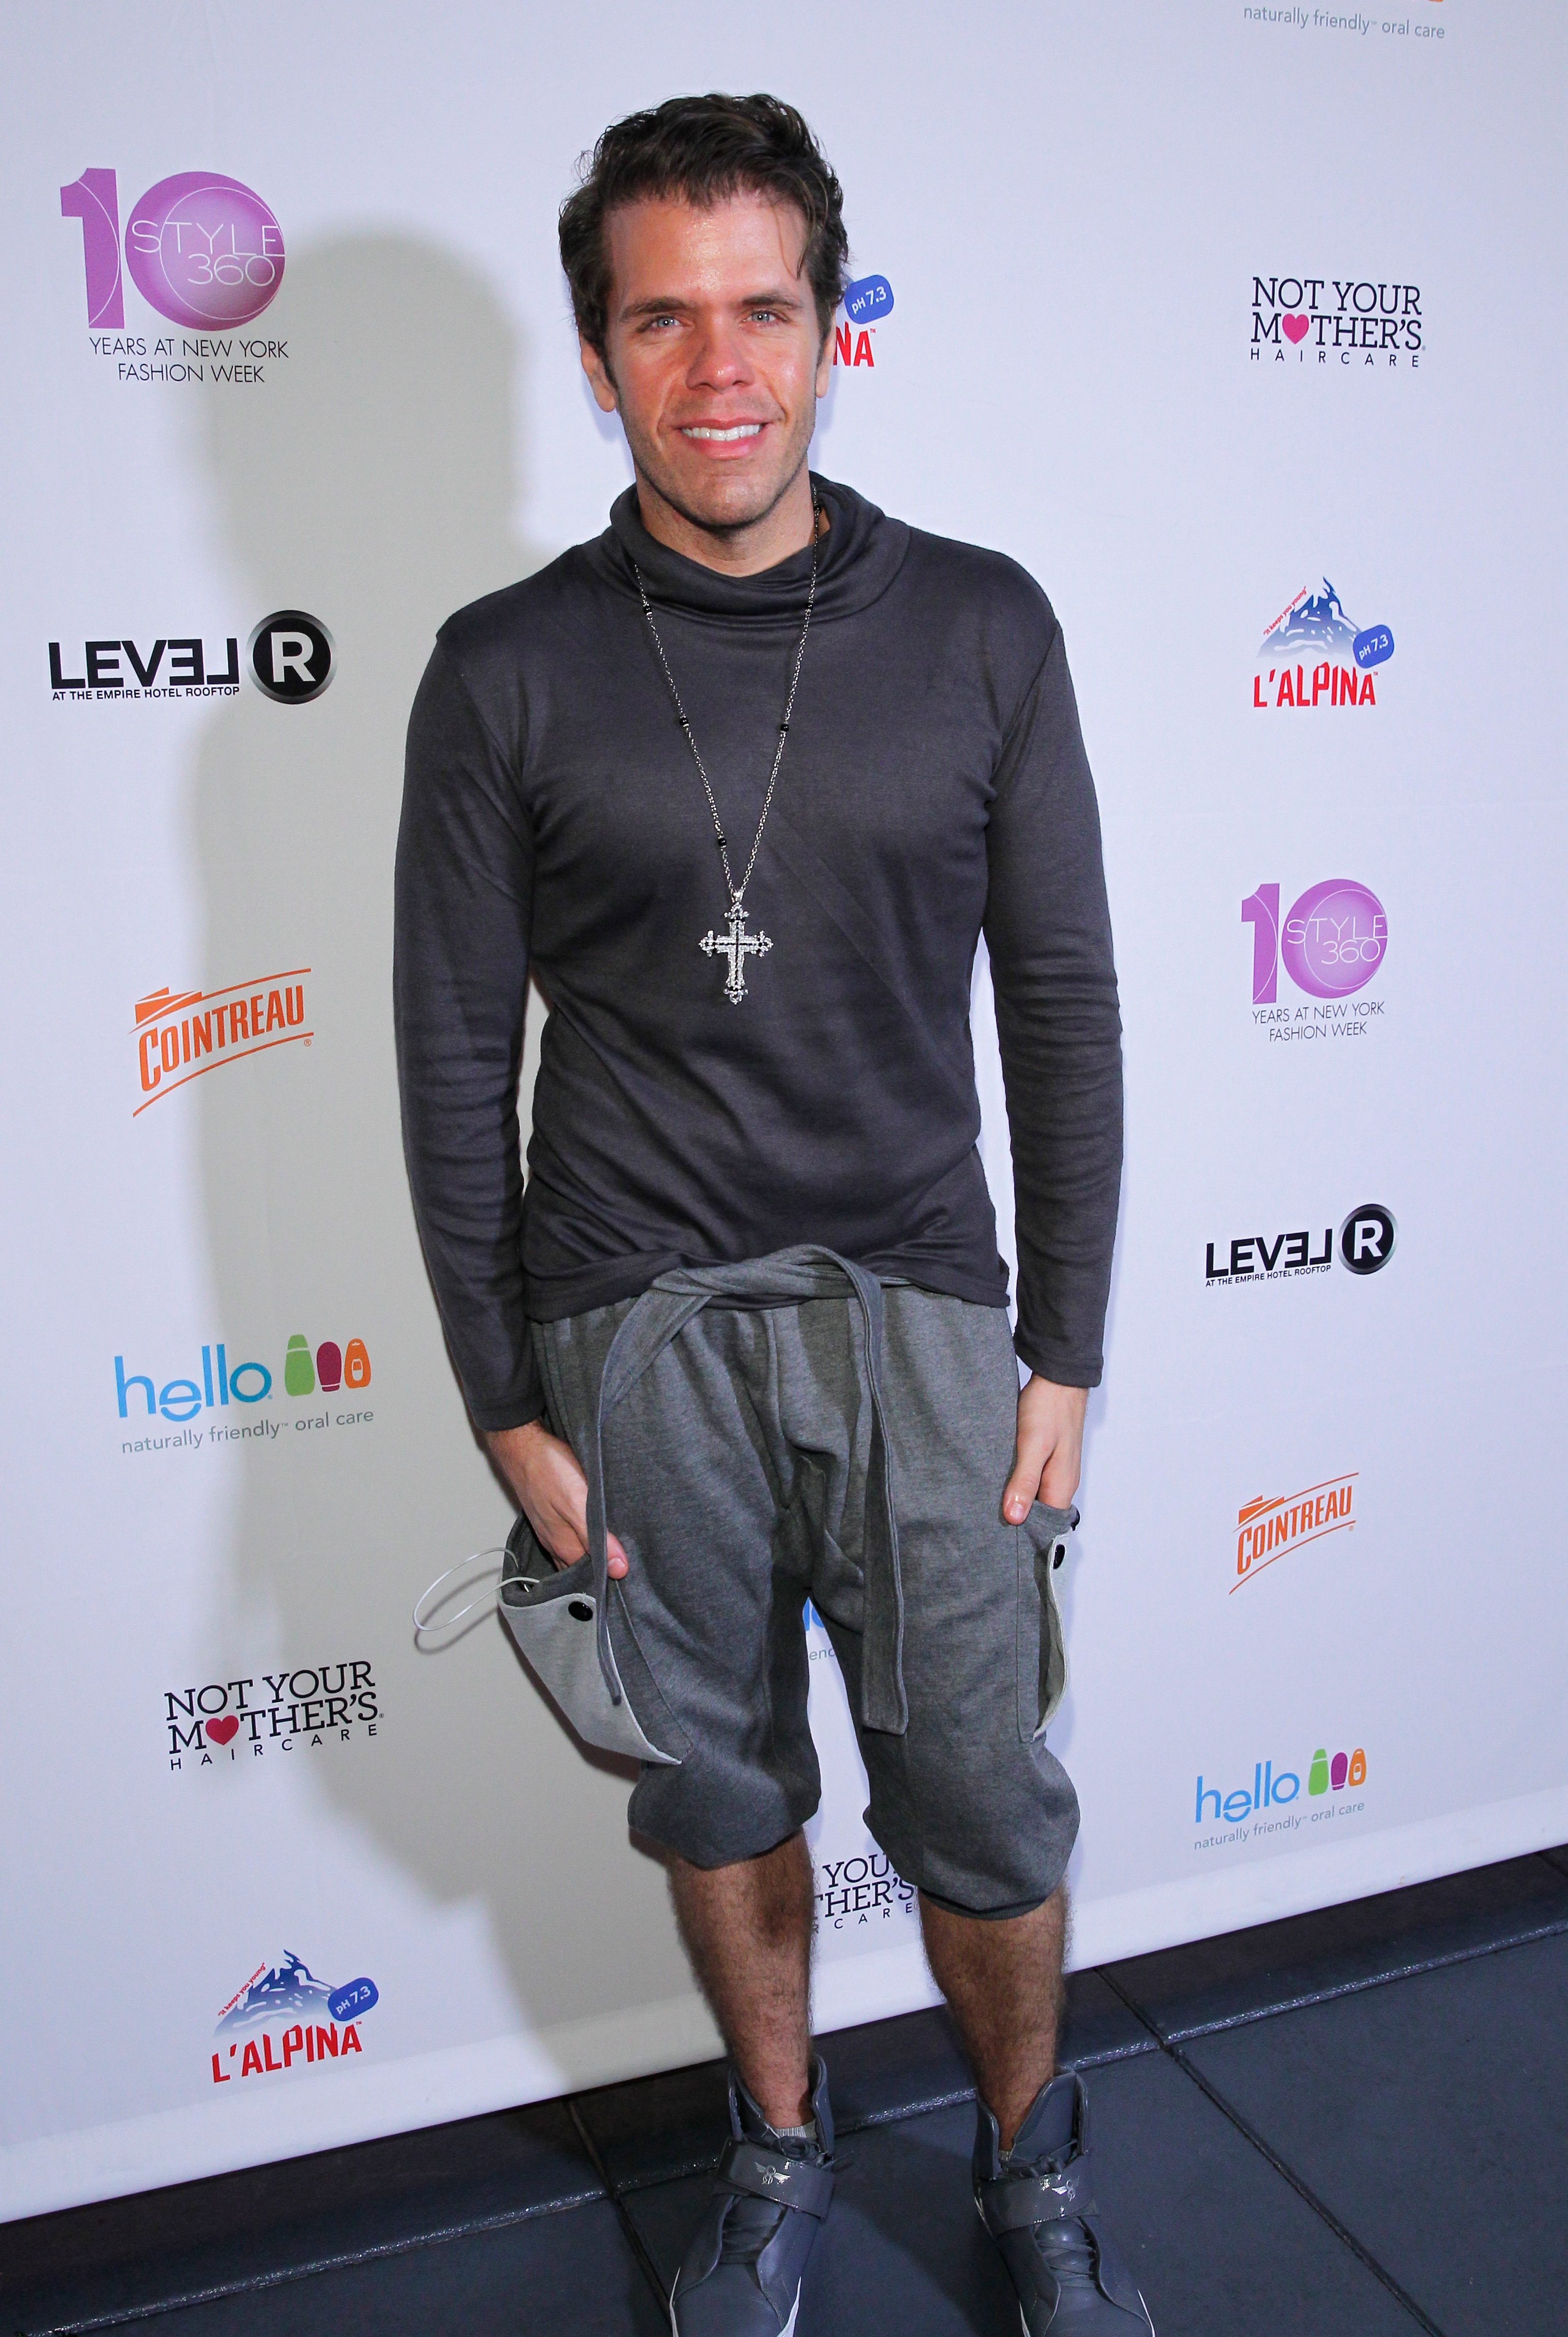 18_Celebrity Blogger Perez Hilton on the red carpet at STYLE360